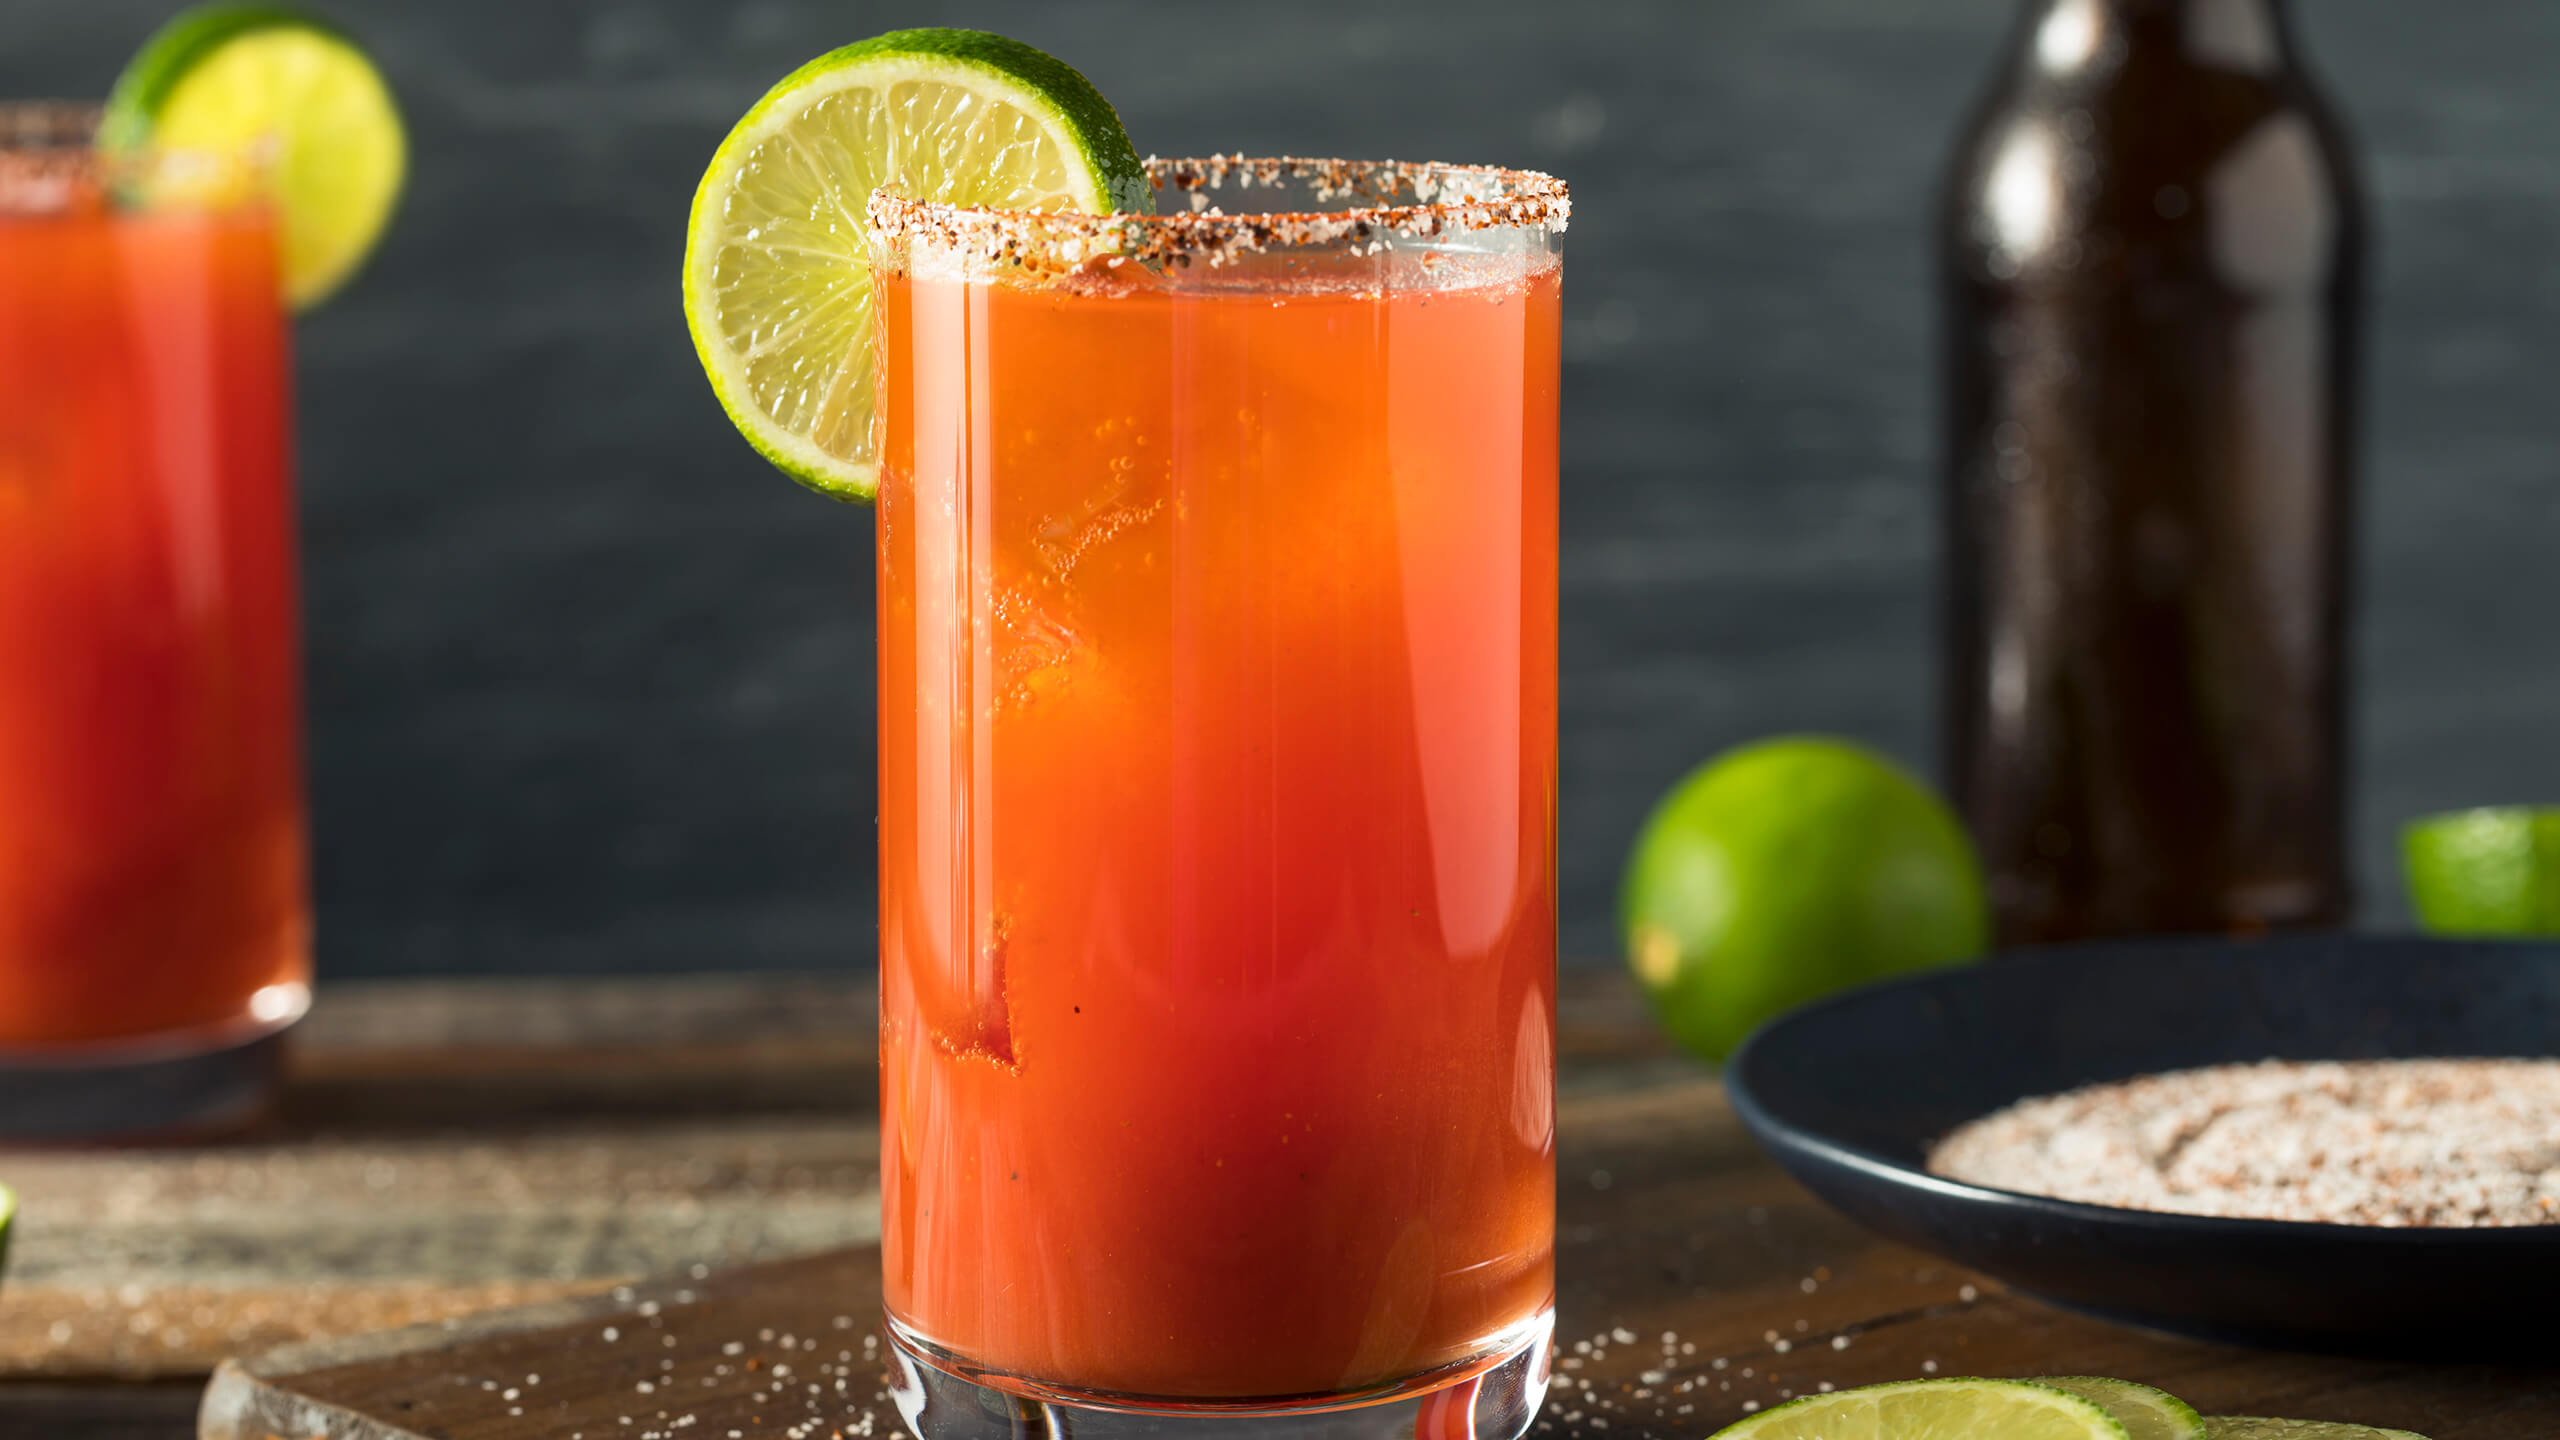 Louisiana Michelada